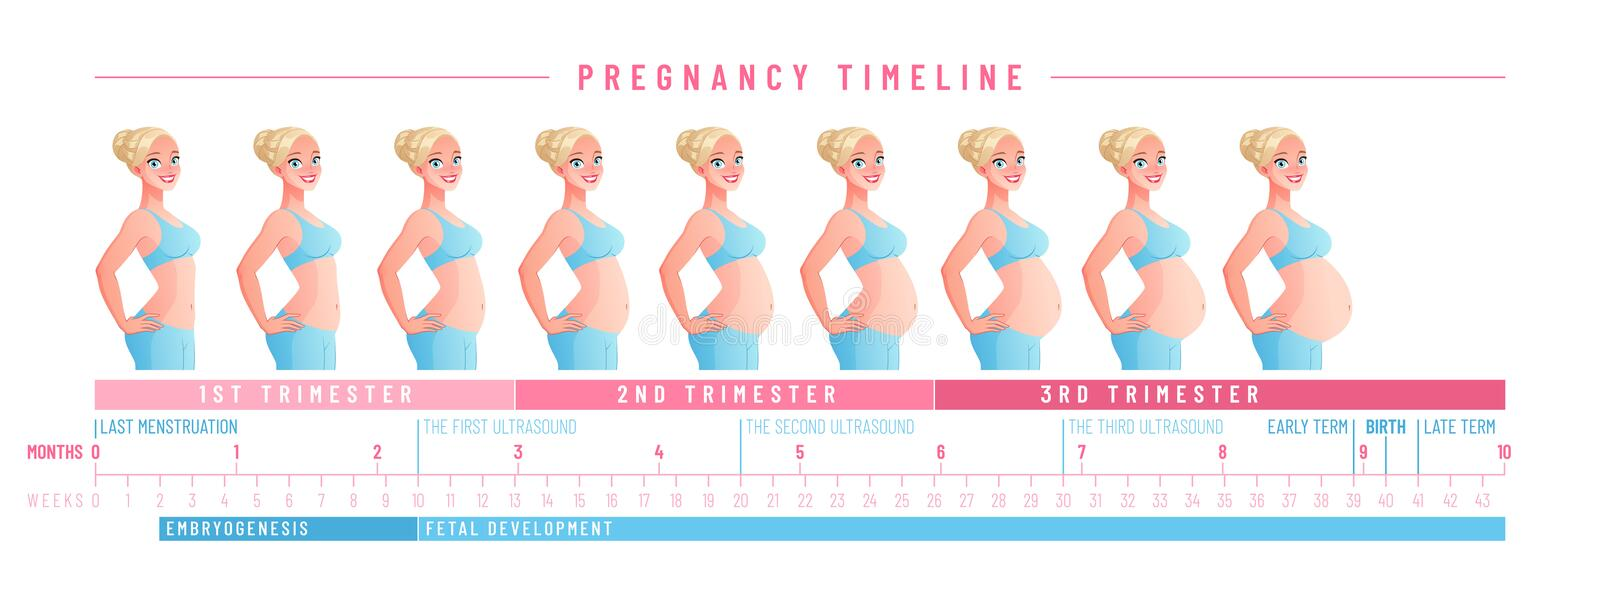 Pregnancy timeline by weeks. Isolated vector illustration. royalty free illustration